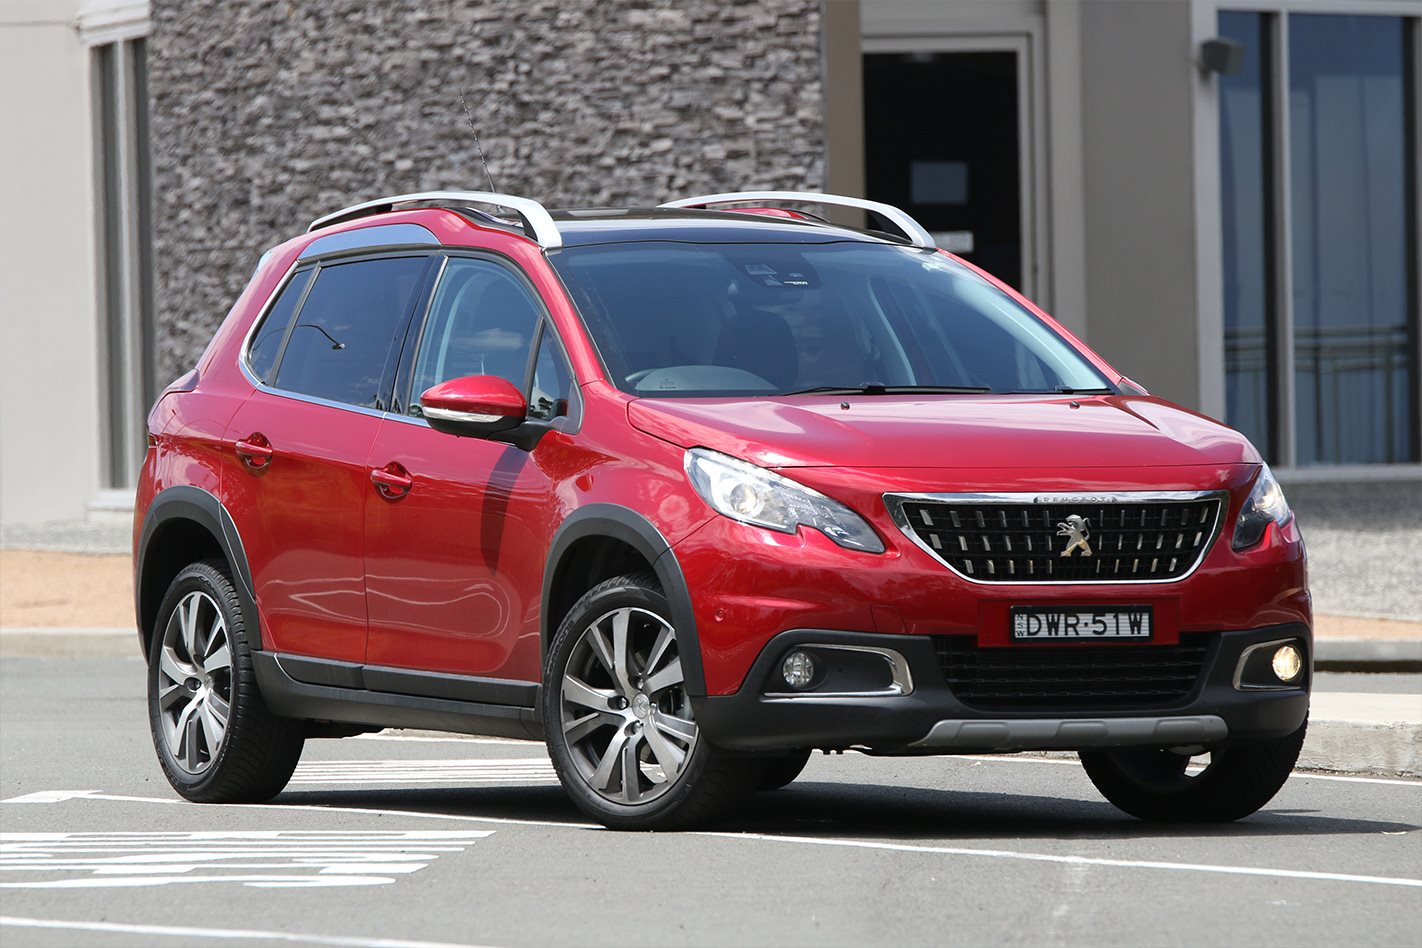 Peugeot 2008 Automatic Review 2019 Peugeot 2008 Allure Review